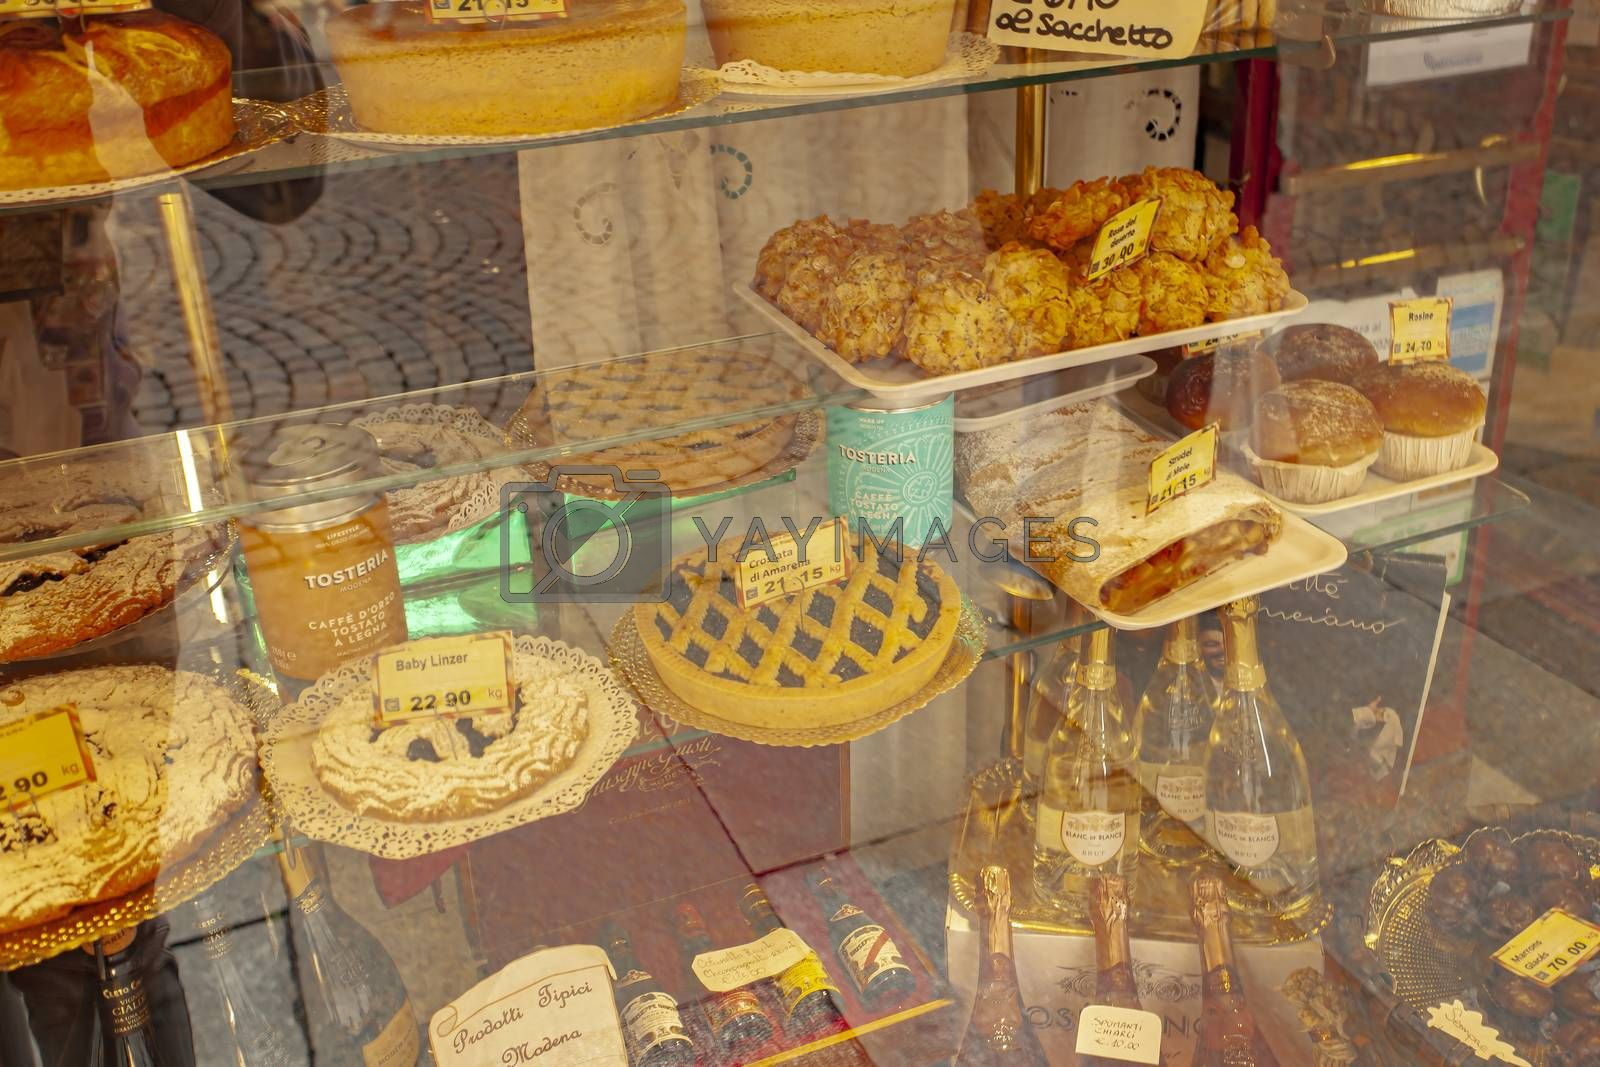 MODENA, ITALY 1 OCTOBER 2020: Showcase with cakes in Italy